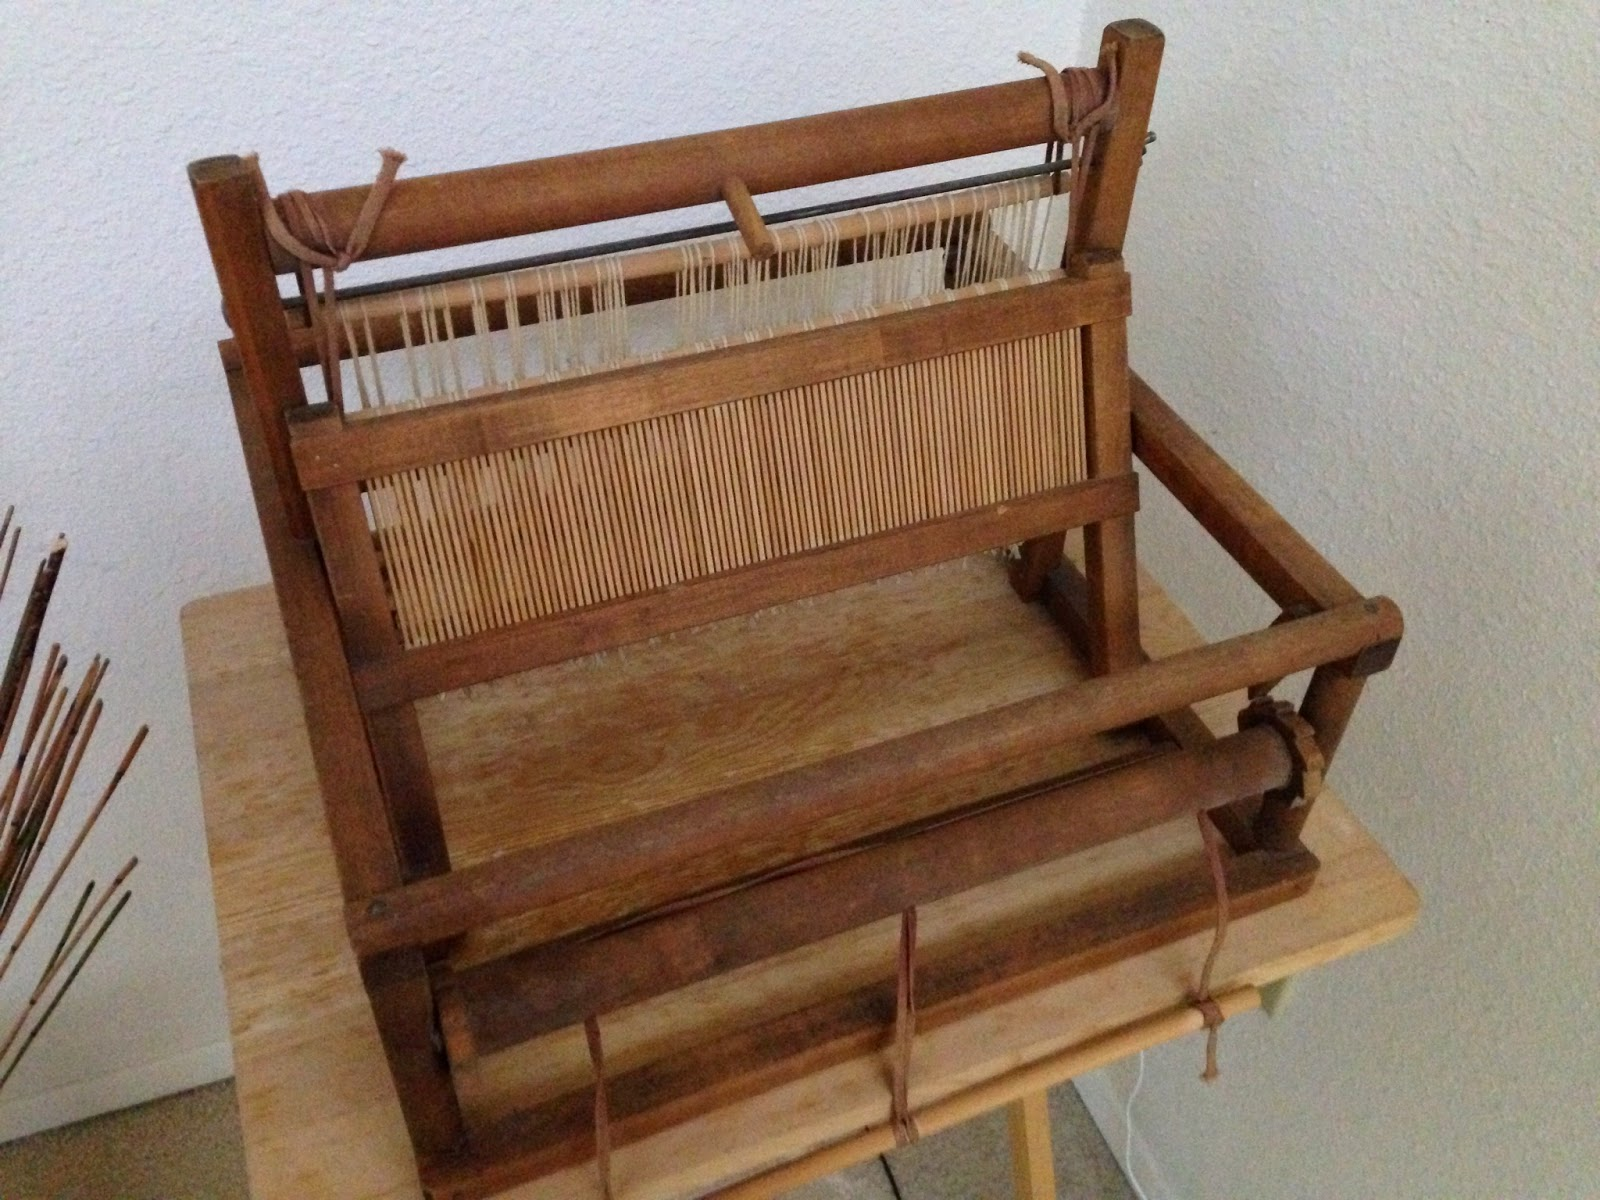 Floor Loom Plans Creative With Clay Pottery By Charan Sachar Knitting And